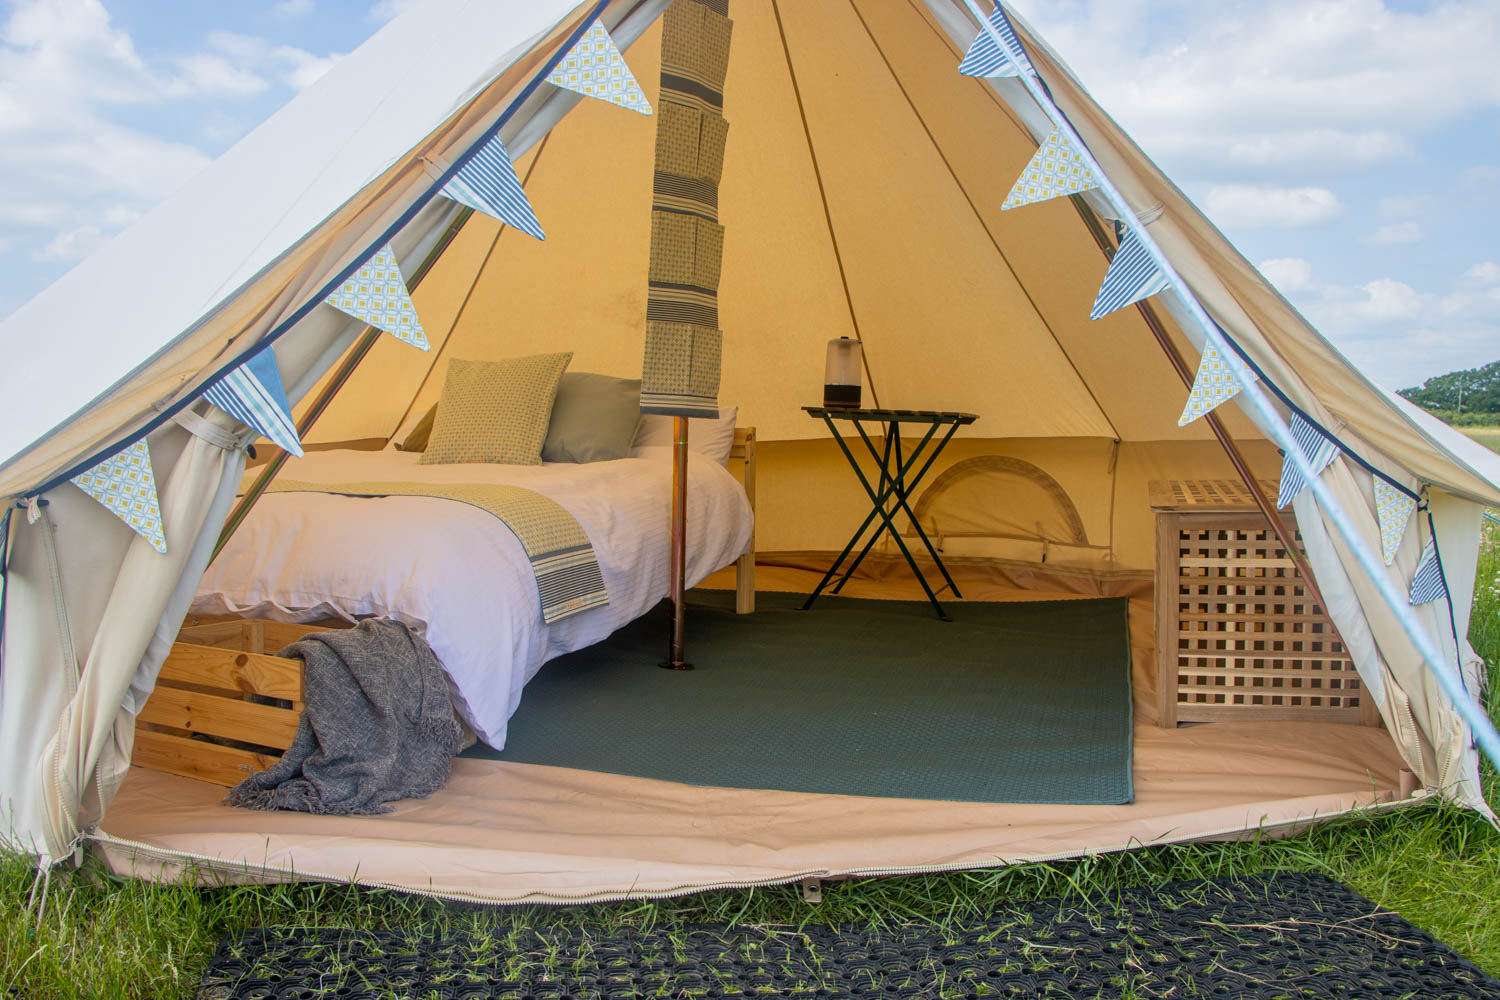 Glamping in The New Forest in bell tents